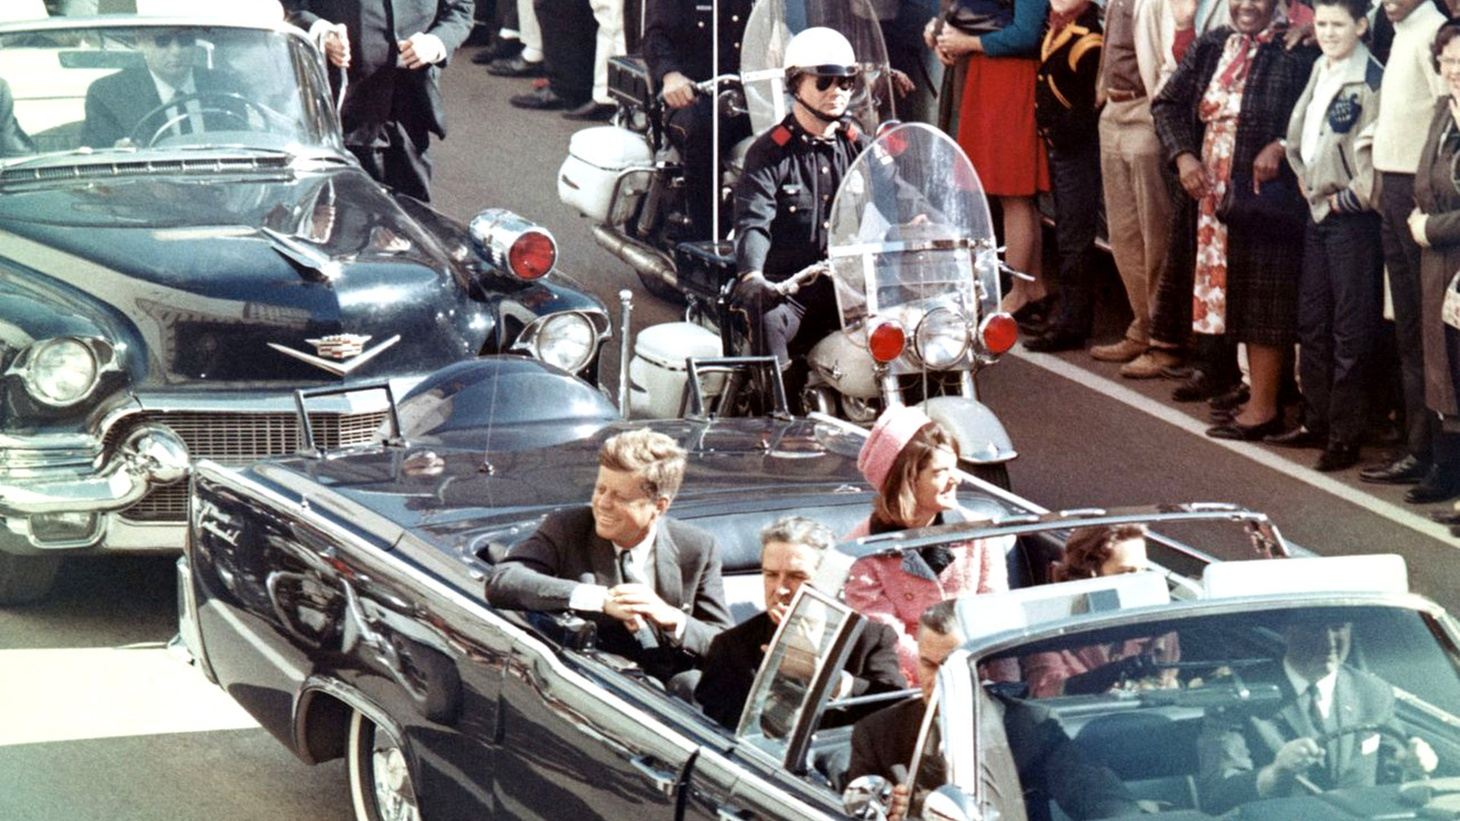 Picture of President Kennedy in the limousine in Dallas, Texas, on Main Street, minutes before the assassination, November 22, 1963.